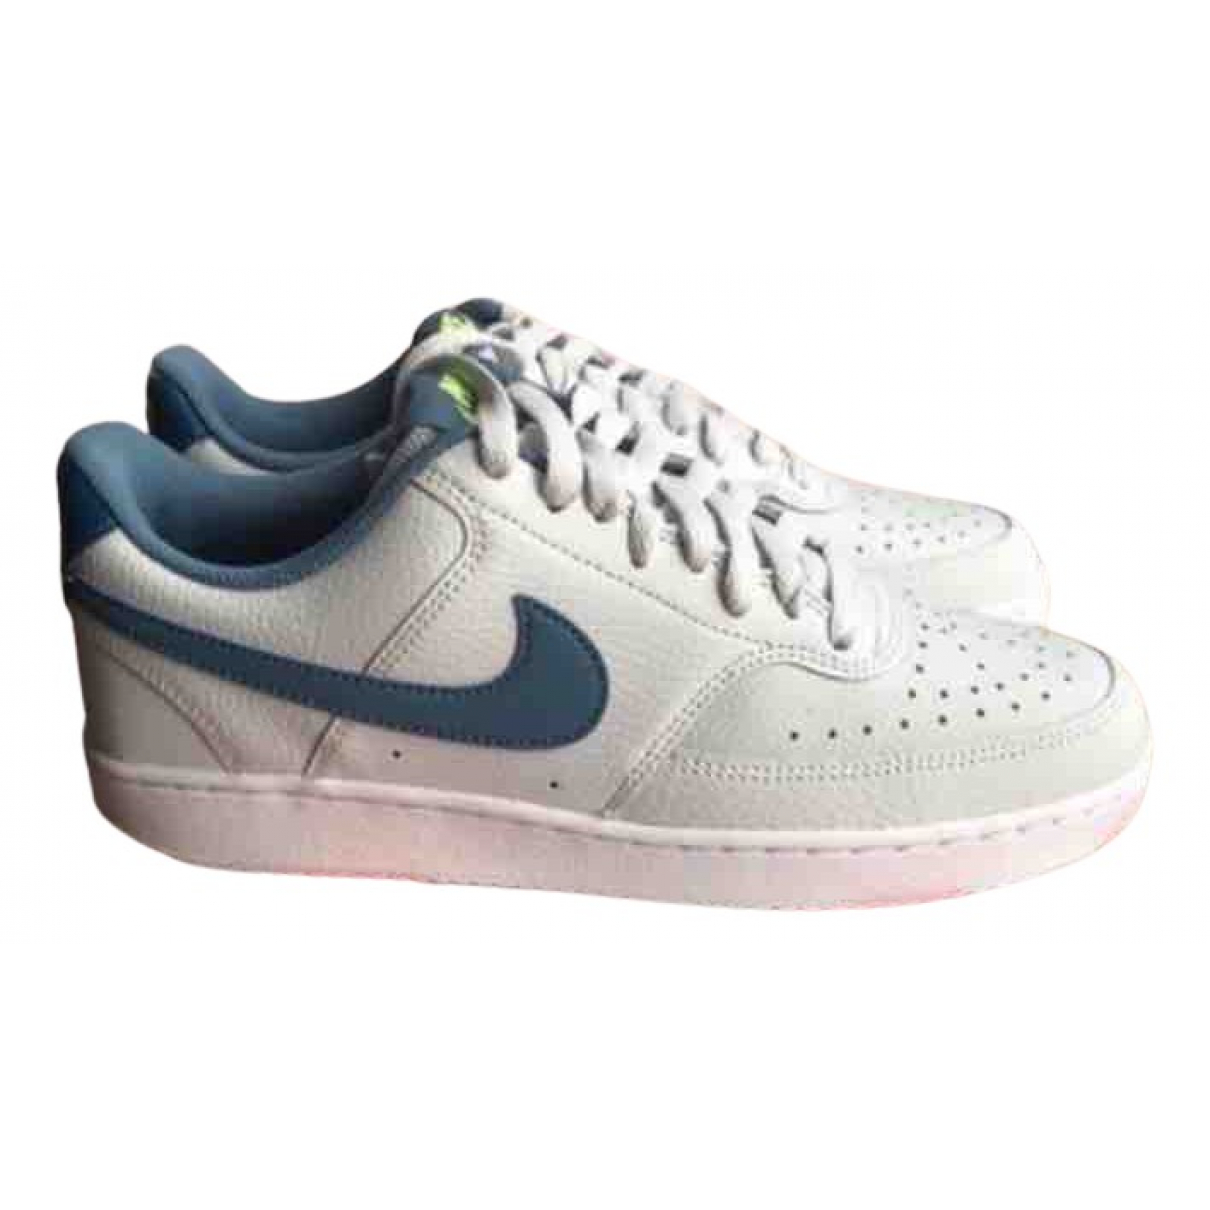 Nike \N Sneakers in  Grau Leder